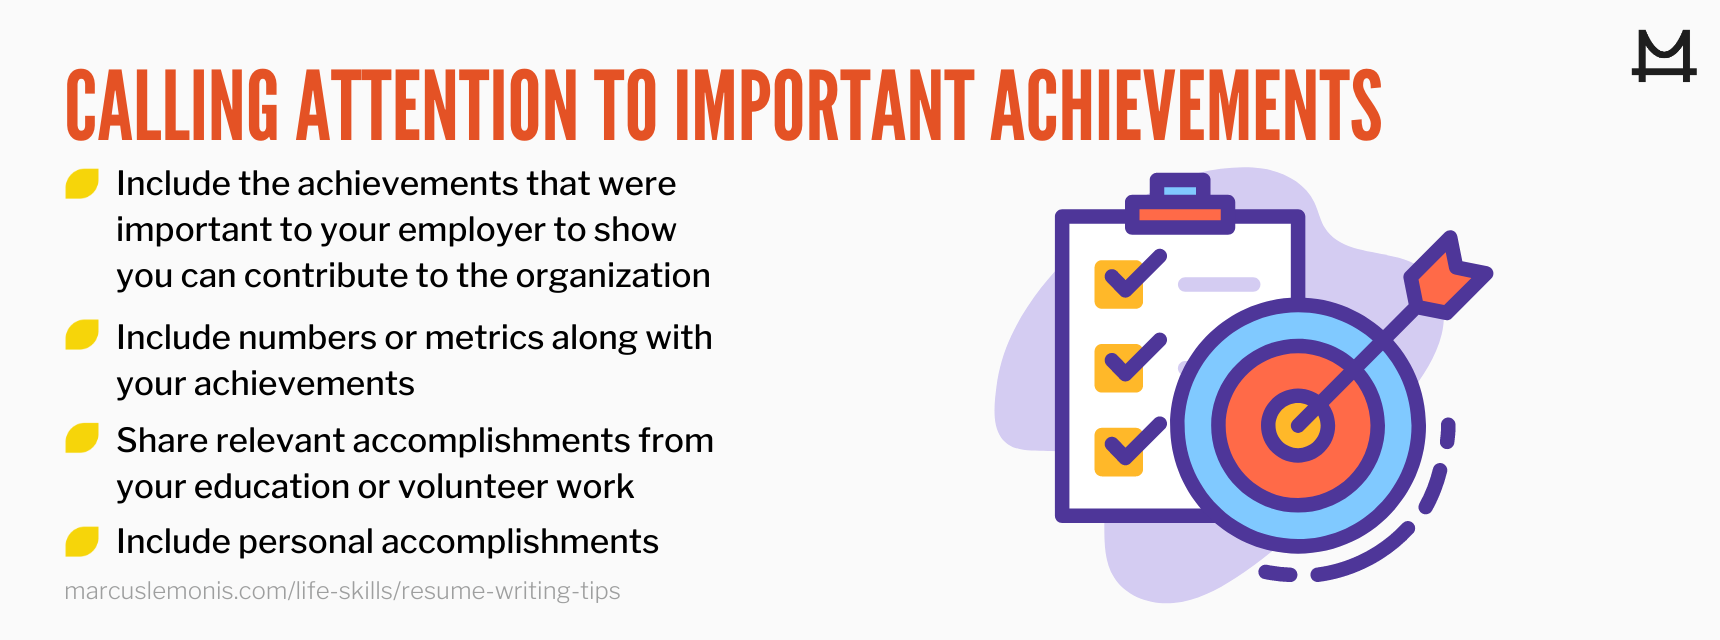 List of ways you can call attention to your important achievements